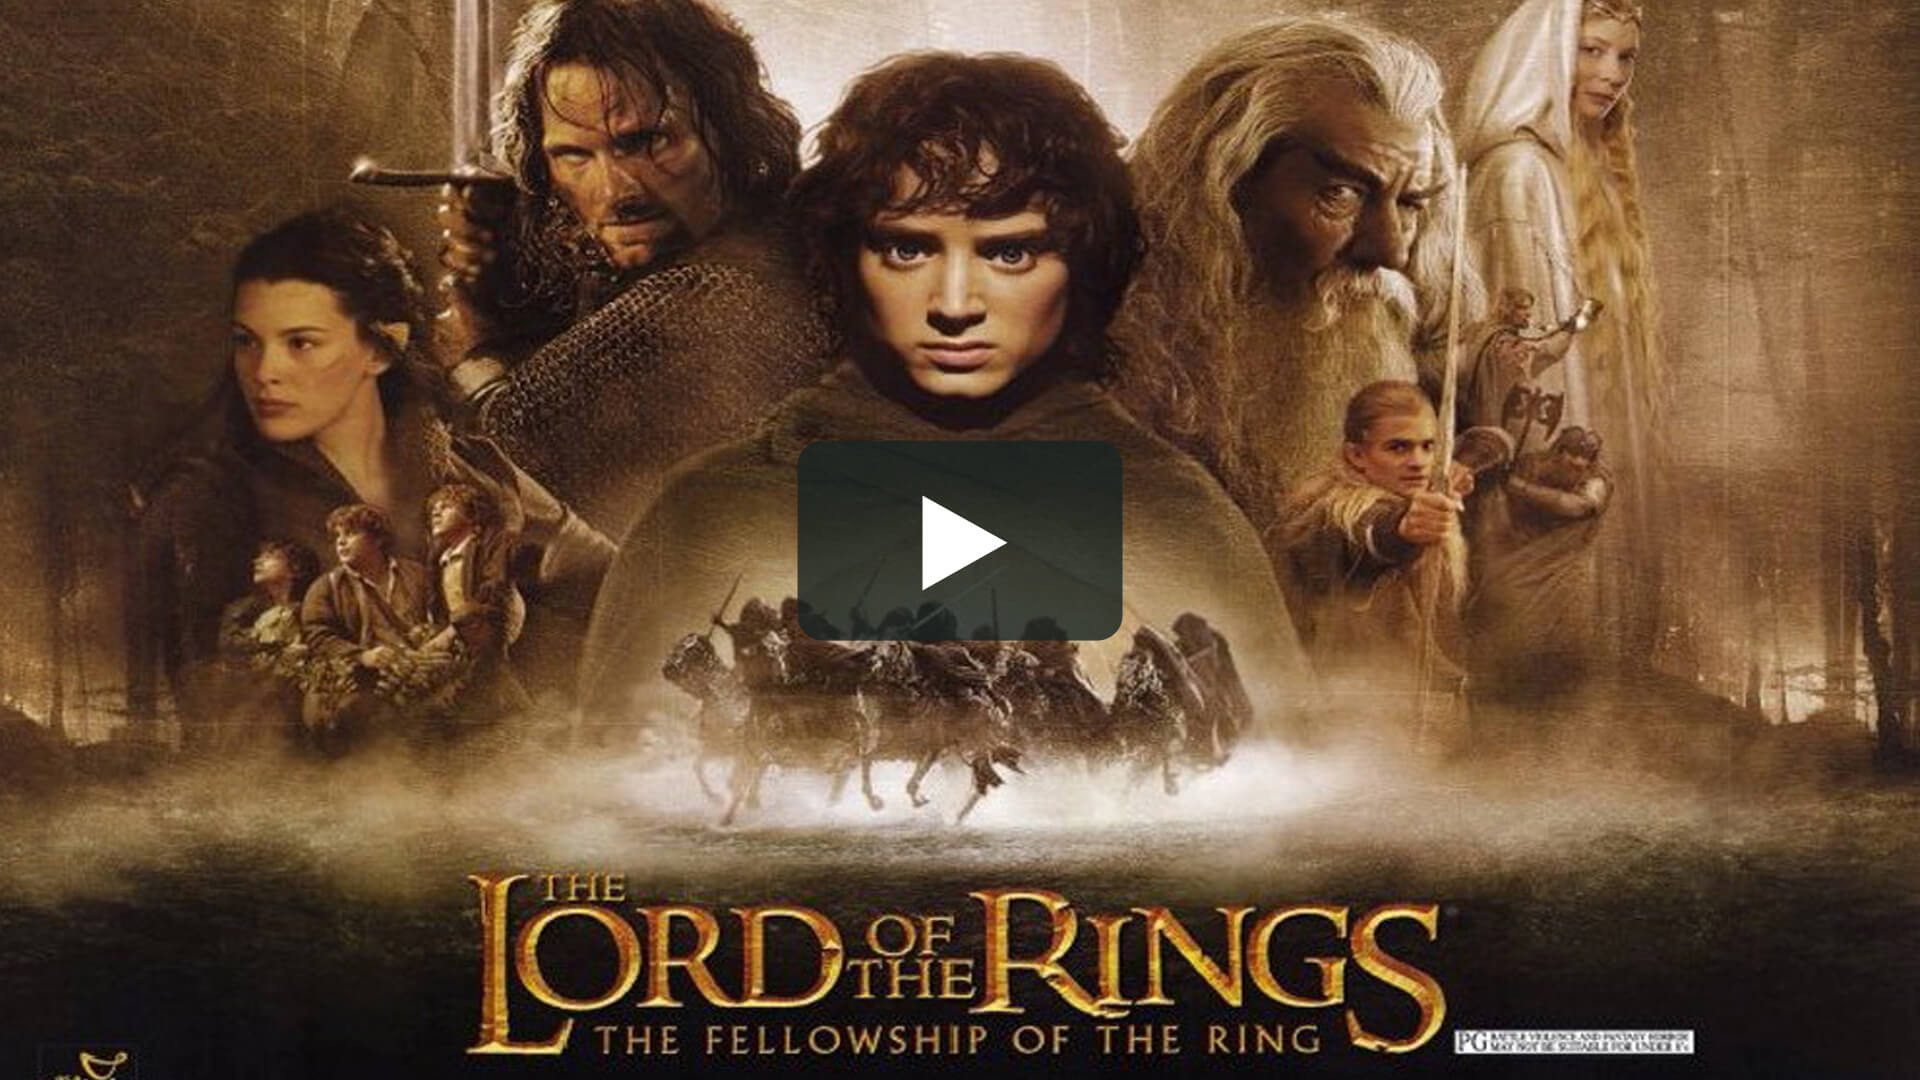 The Lord of the Rings: The Fellowship of the Ring - 指環王1:魔戒再現